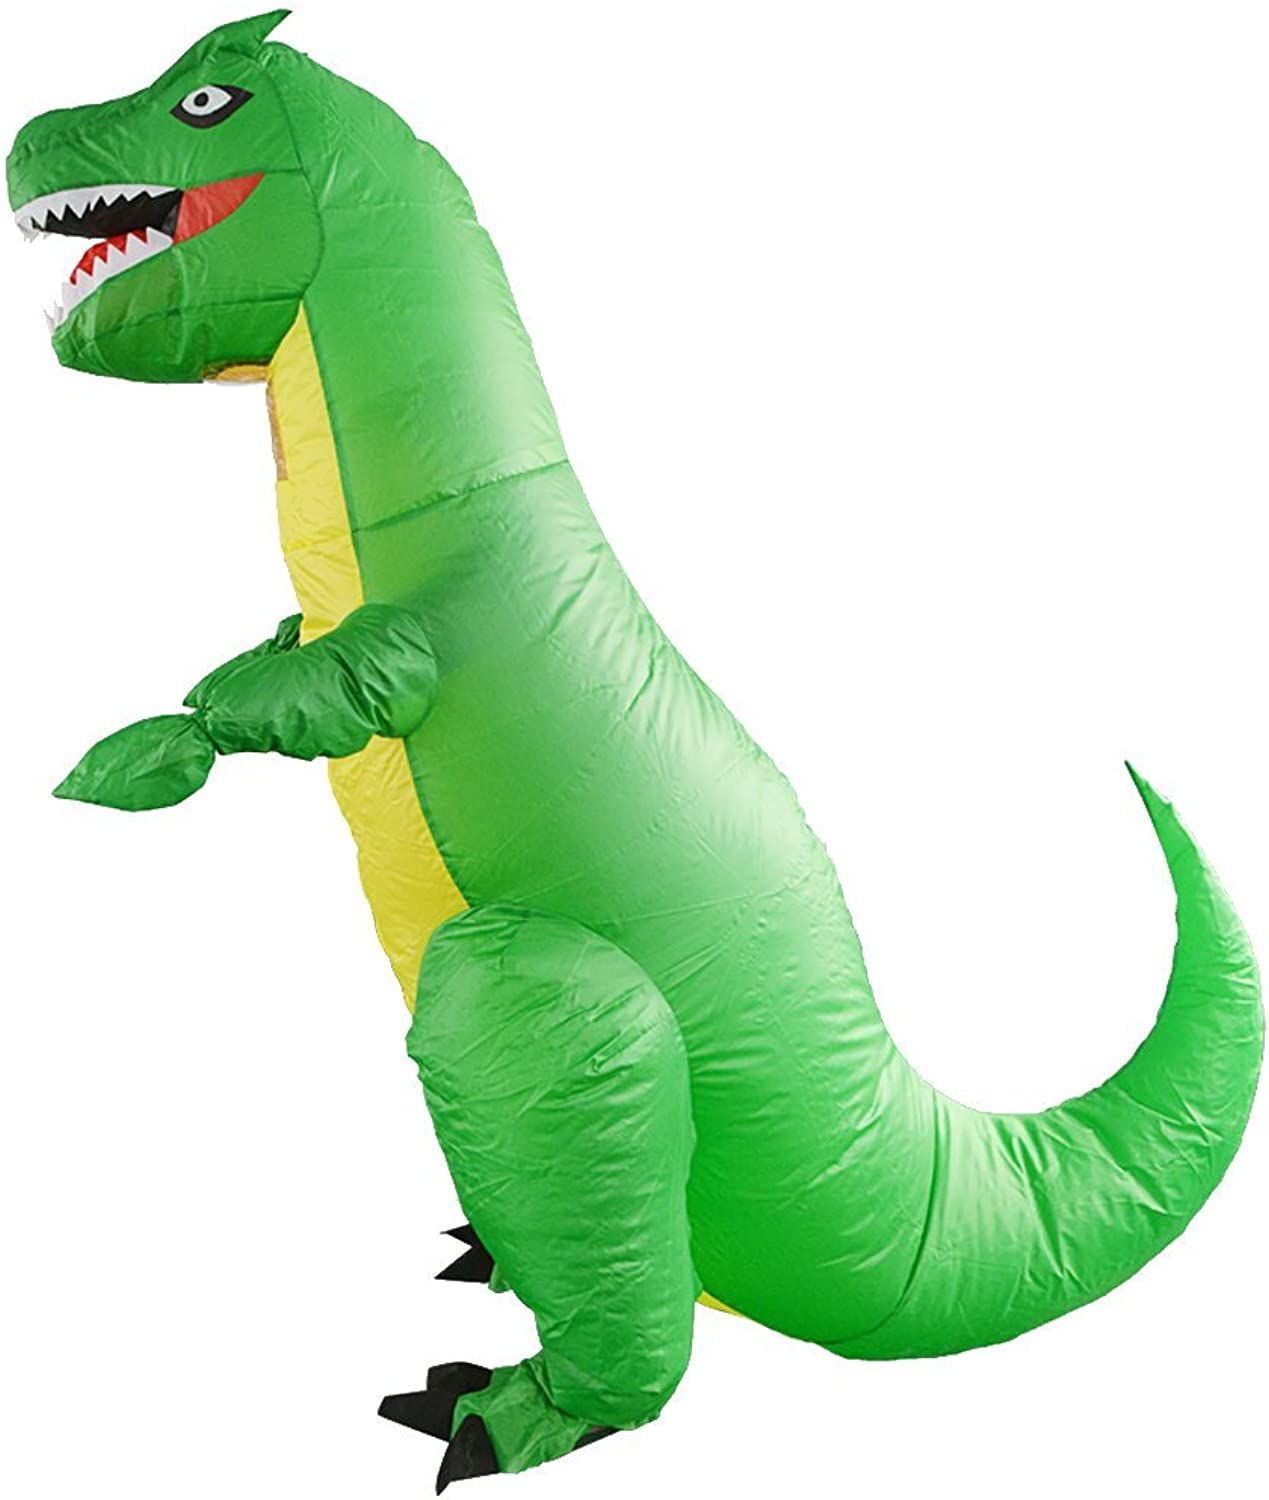 Dolity Fun Animal TREX Inflatable Dinosaur Costume Adult Cosplay Party Dress Green